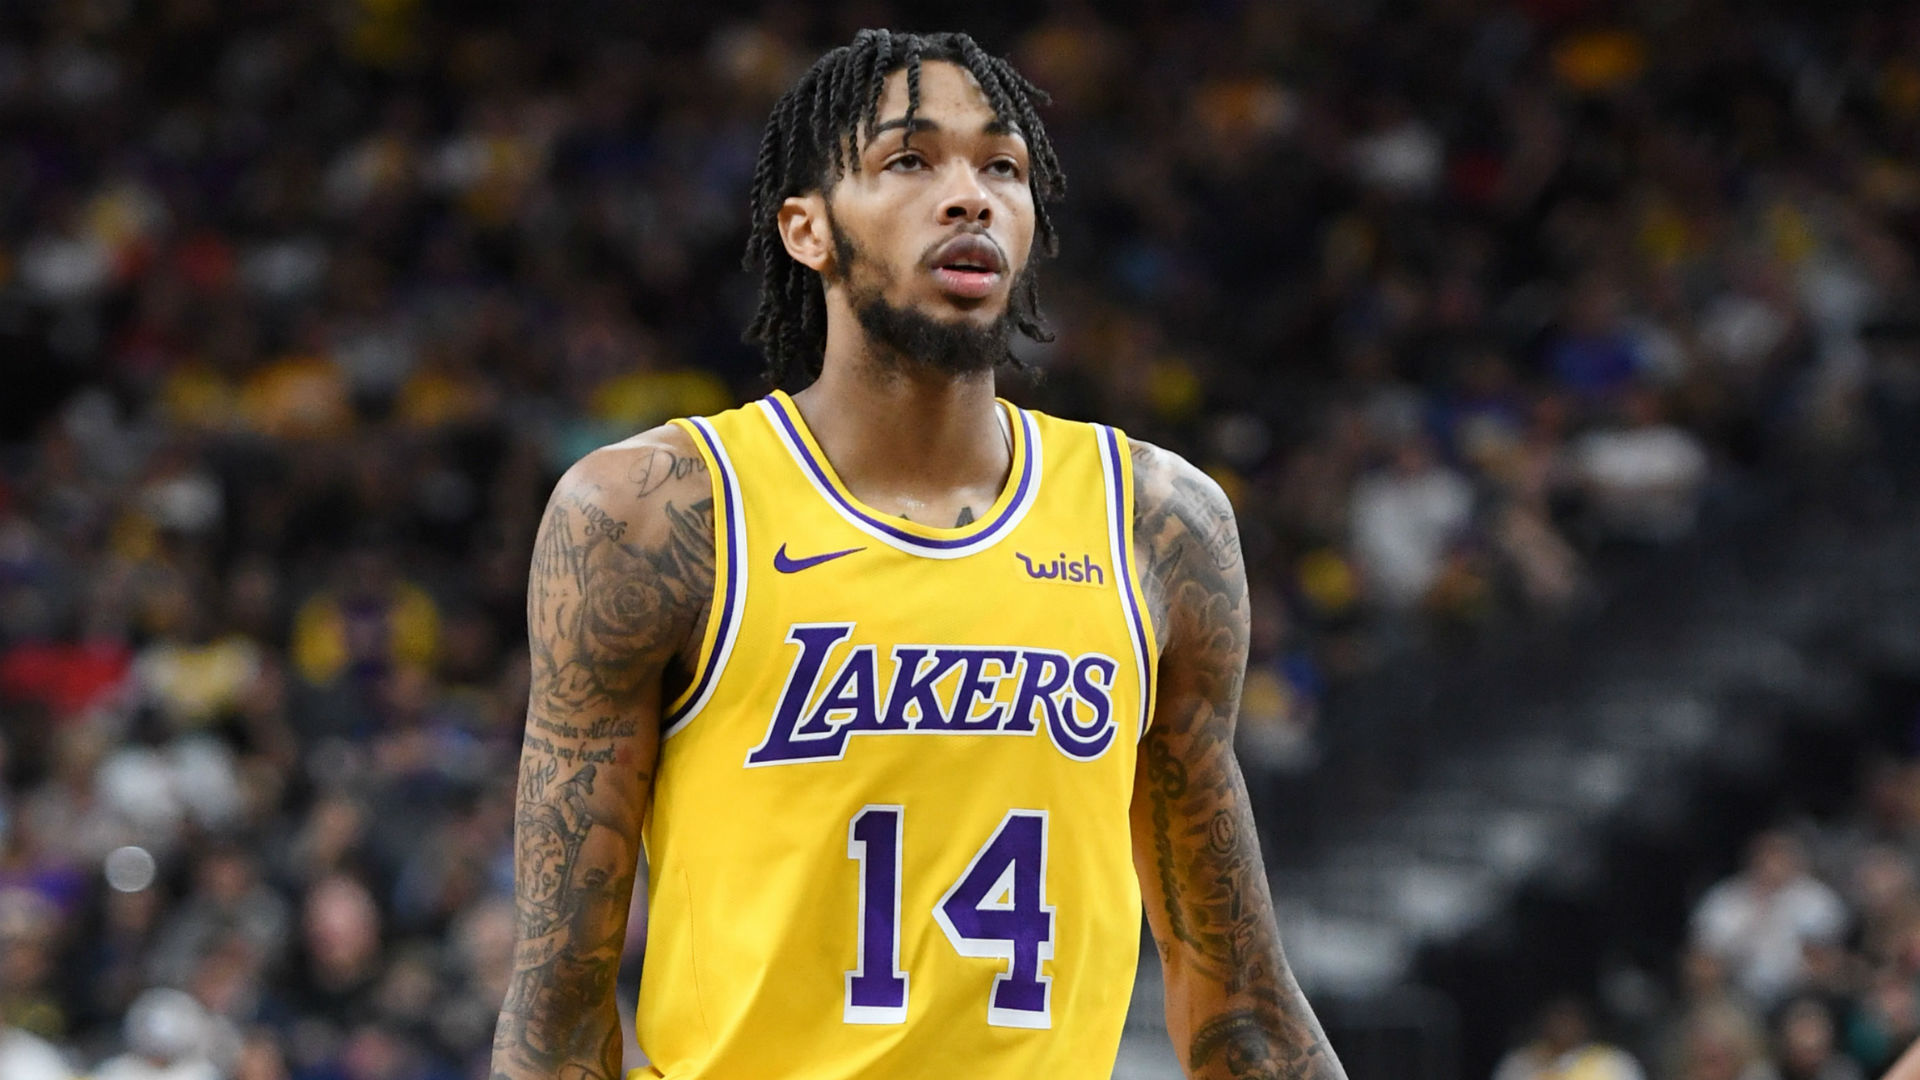 Ingram-brandon-10212018-getty-ftr_qn0ws8ibkq1w1um67hpea3z0v